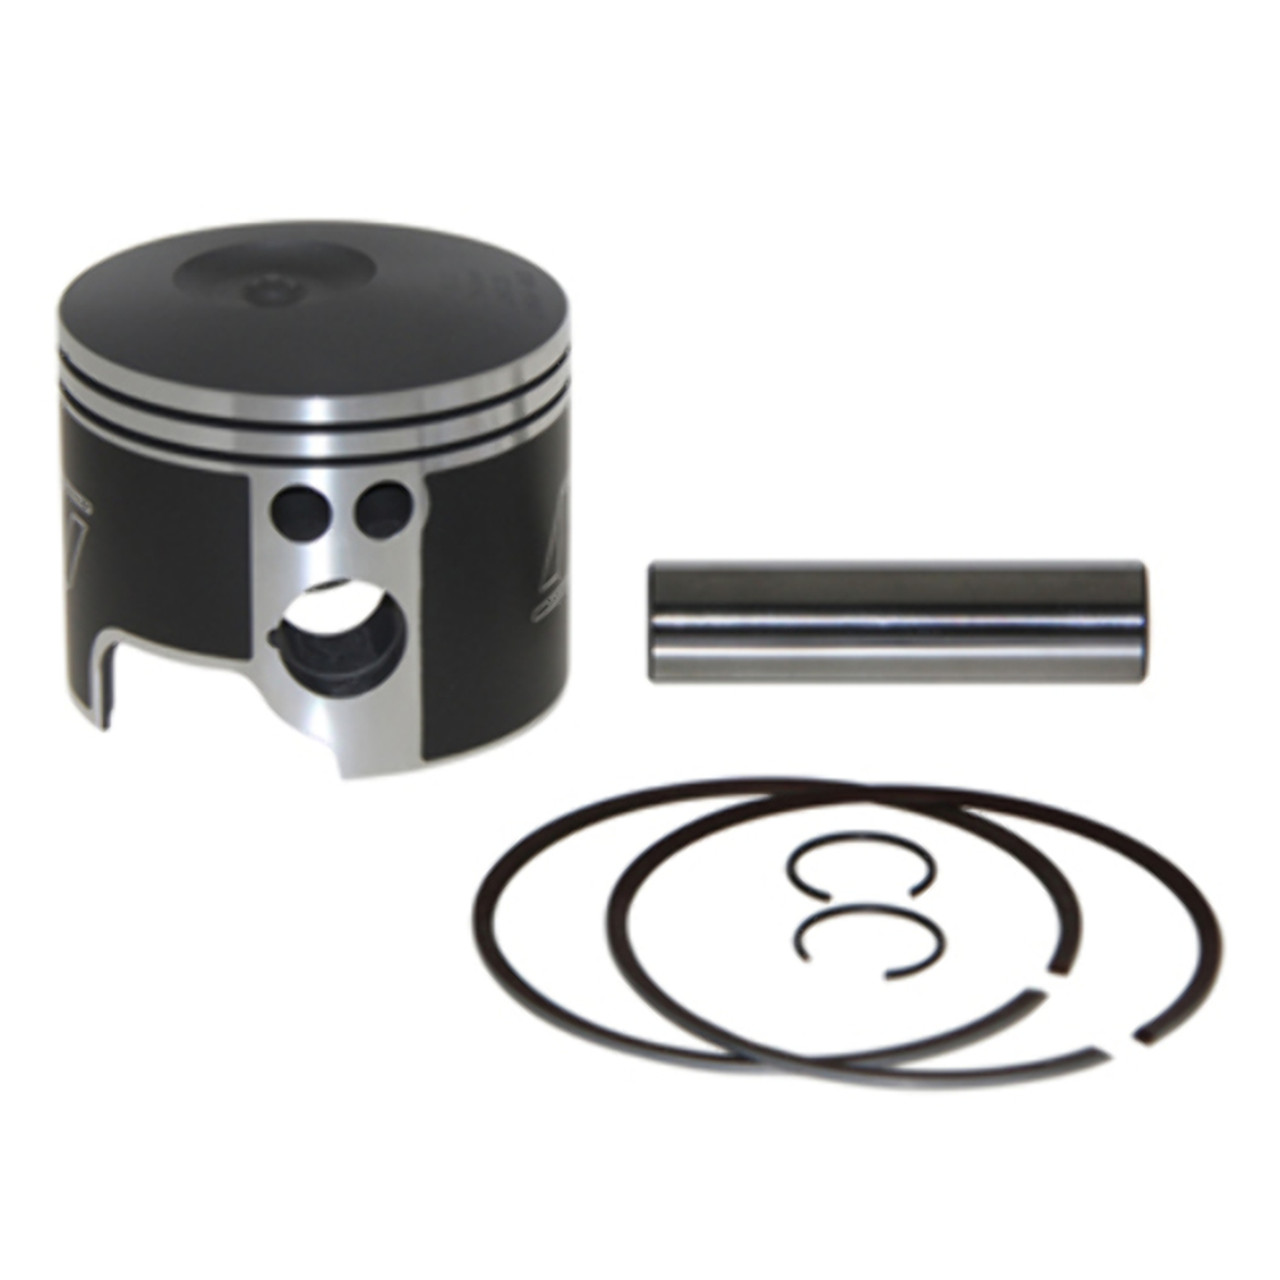 Wiseco Piston Kit Std  Port, Evinrude 200-250 90? E-Tec, E-Tec 3 4L 3 854  Bore MPN:3210PS